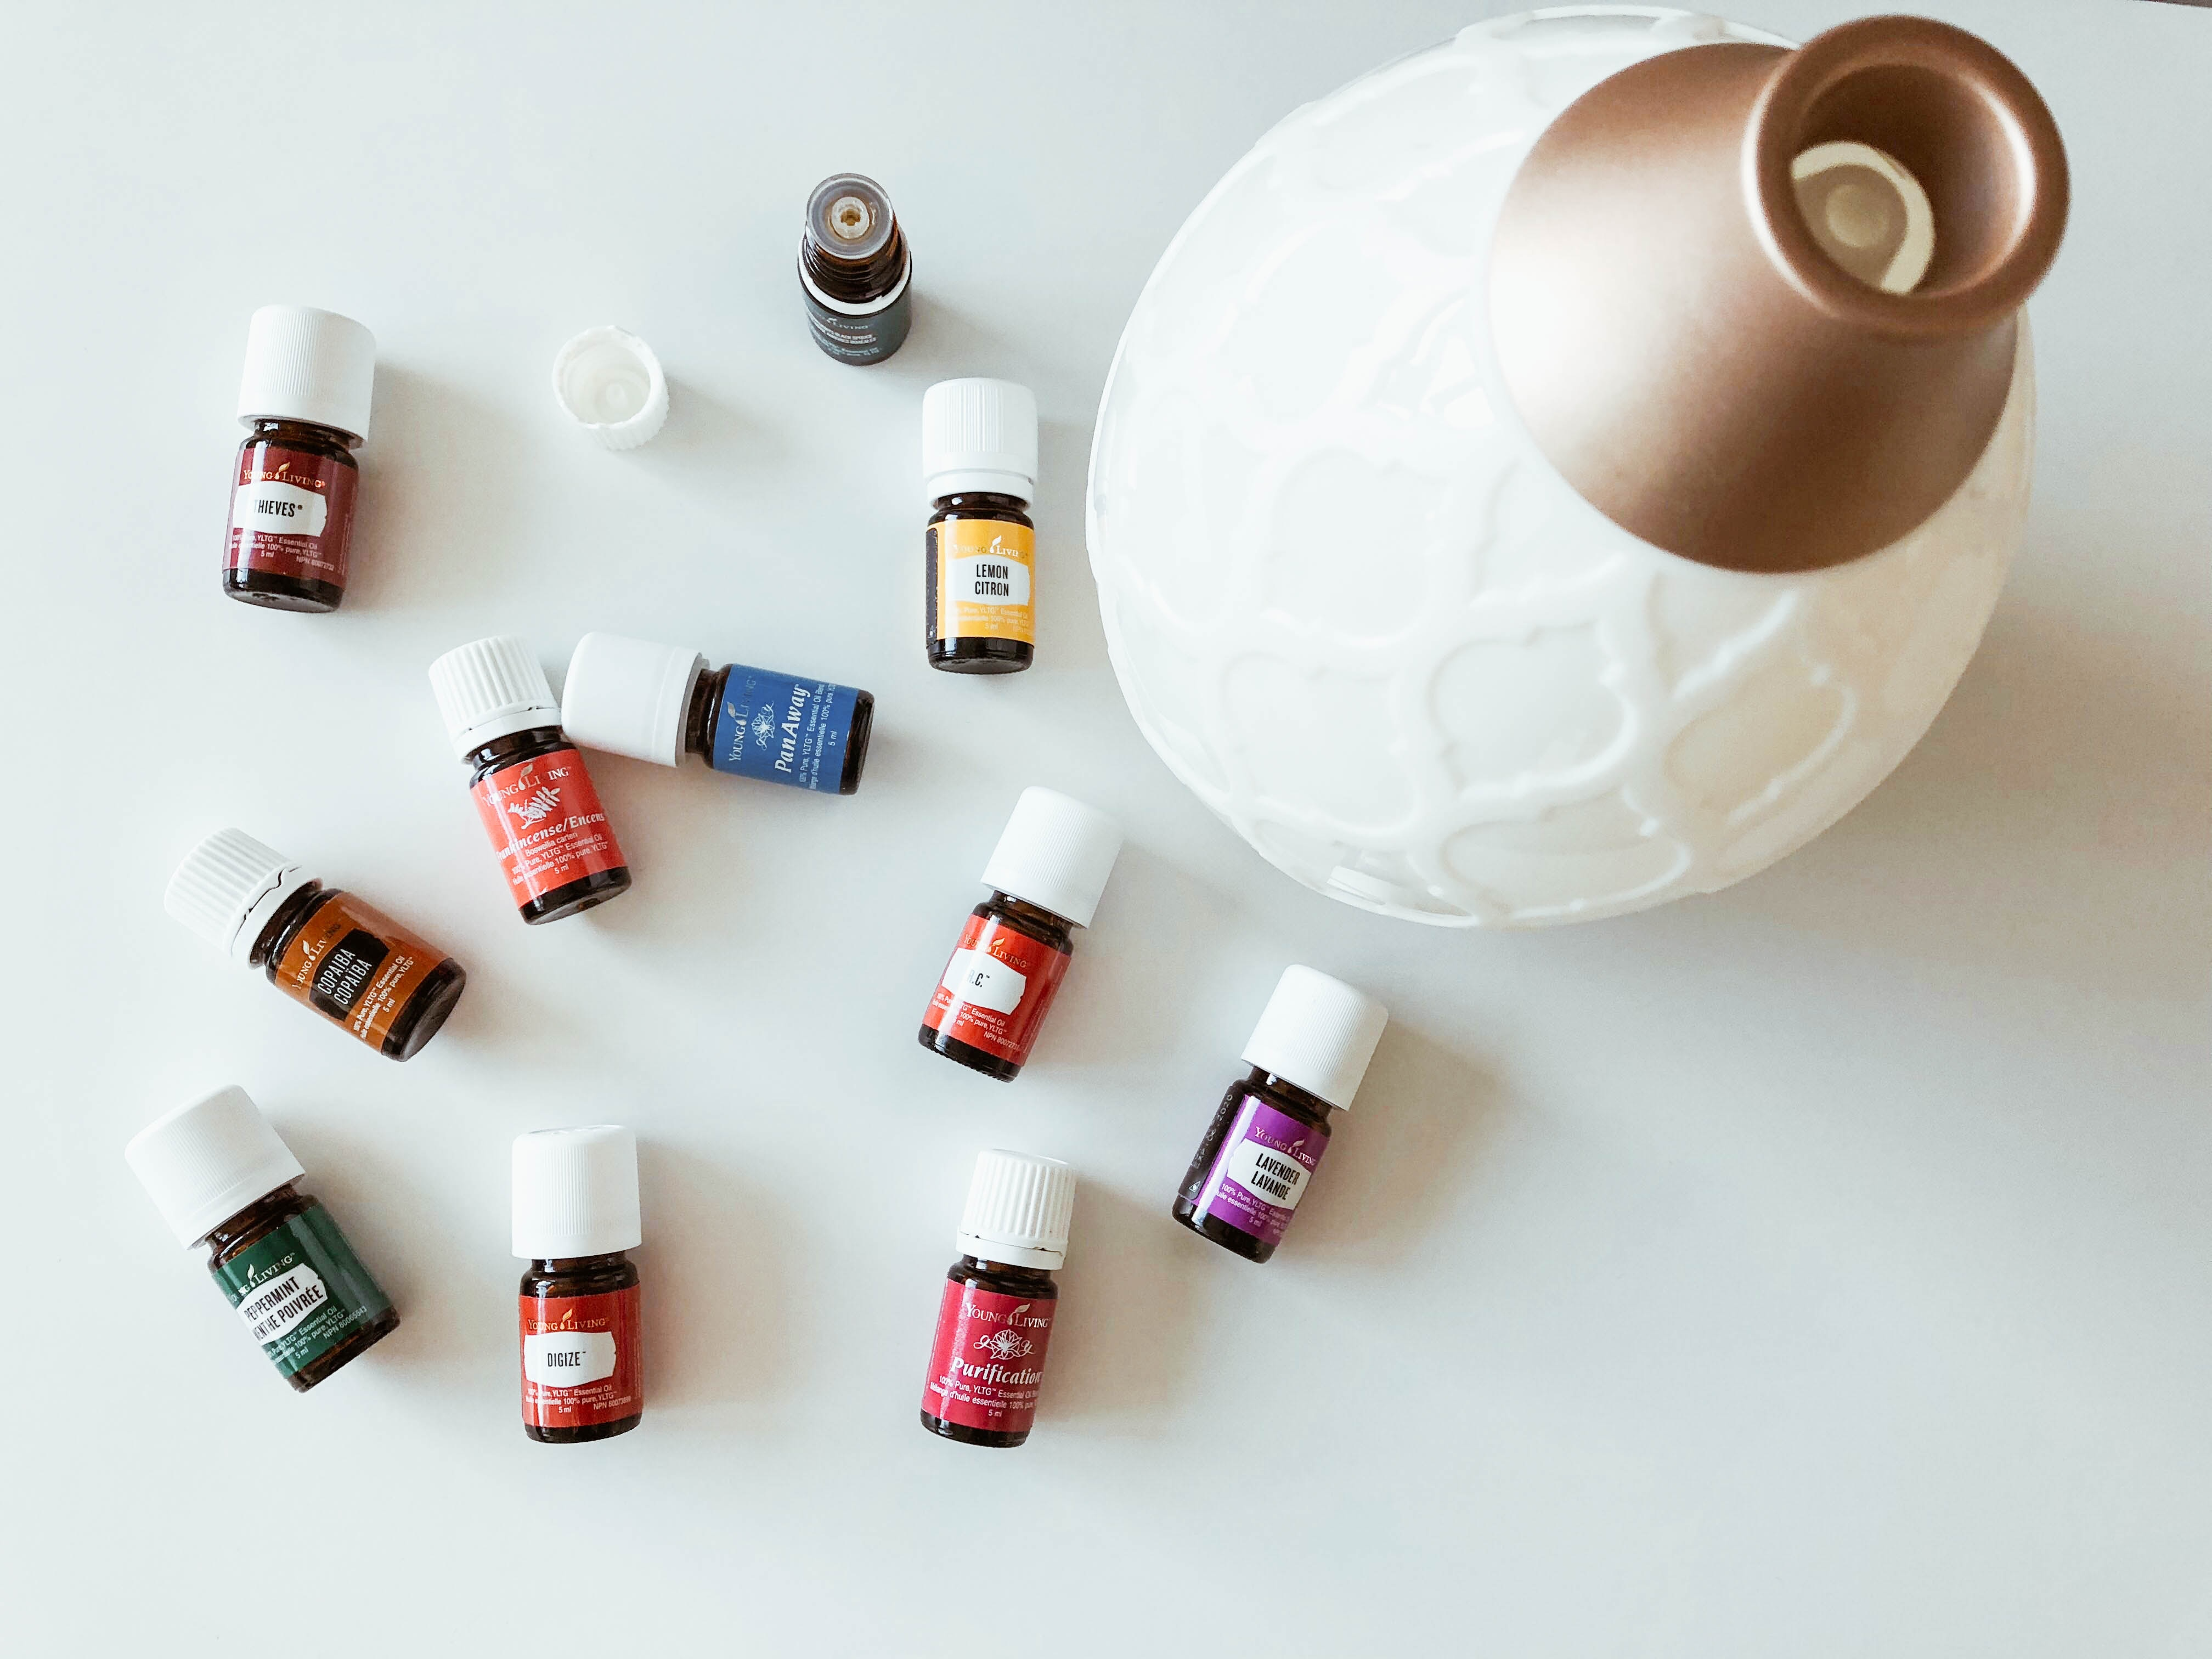 How Can One Indulge In Aromatherapy?